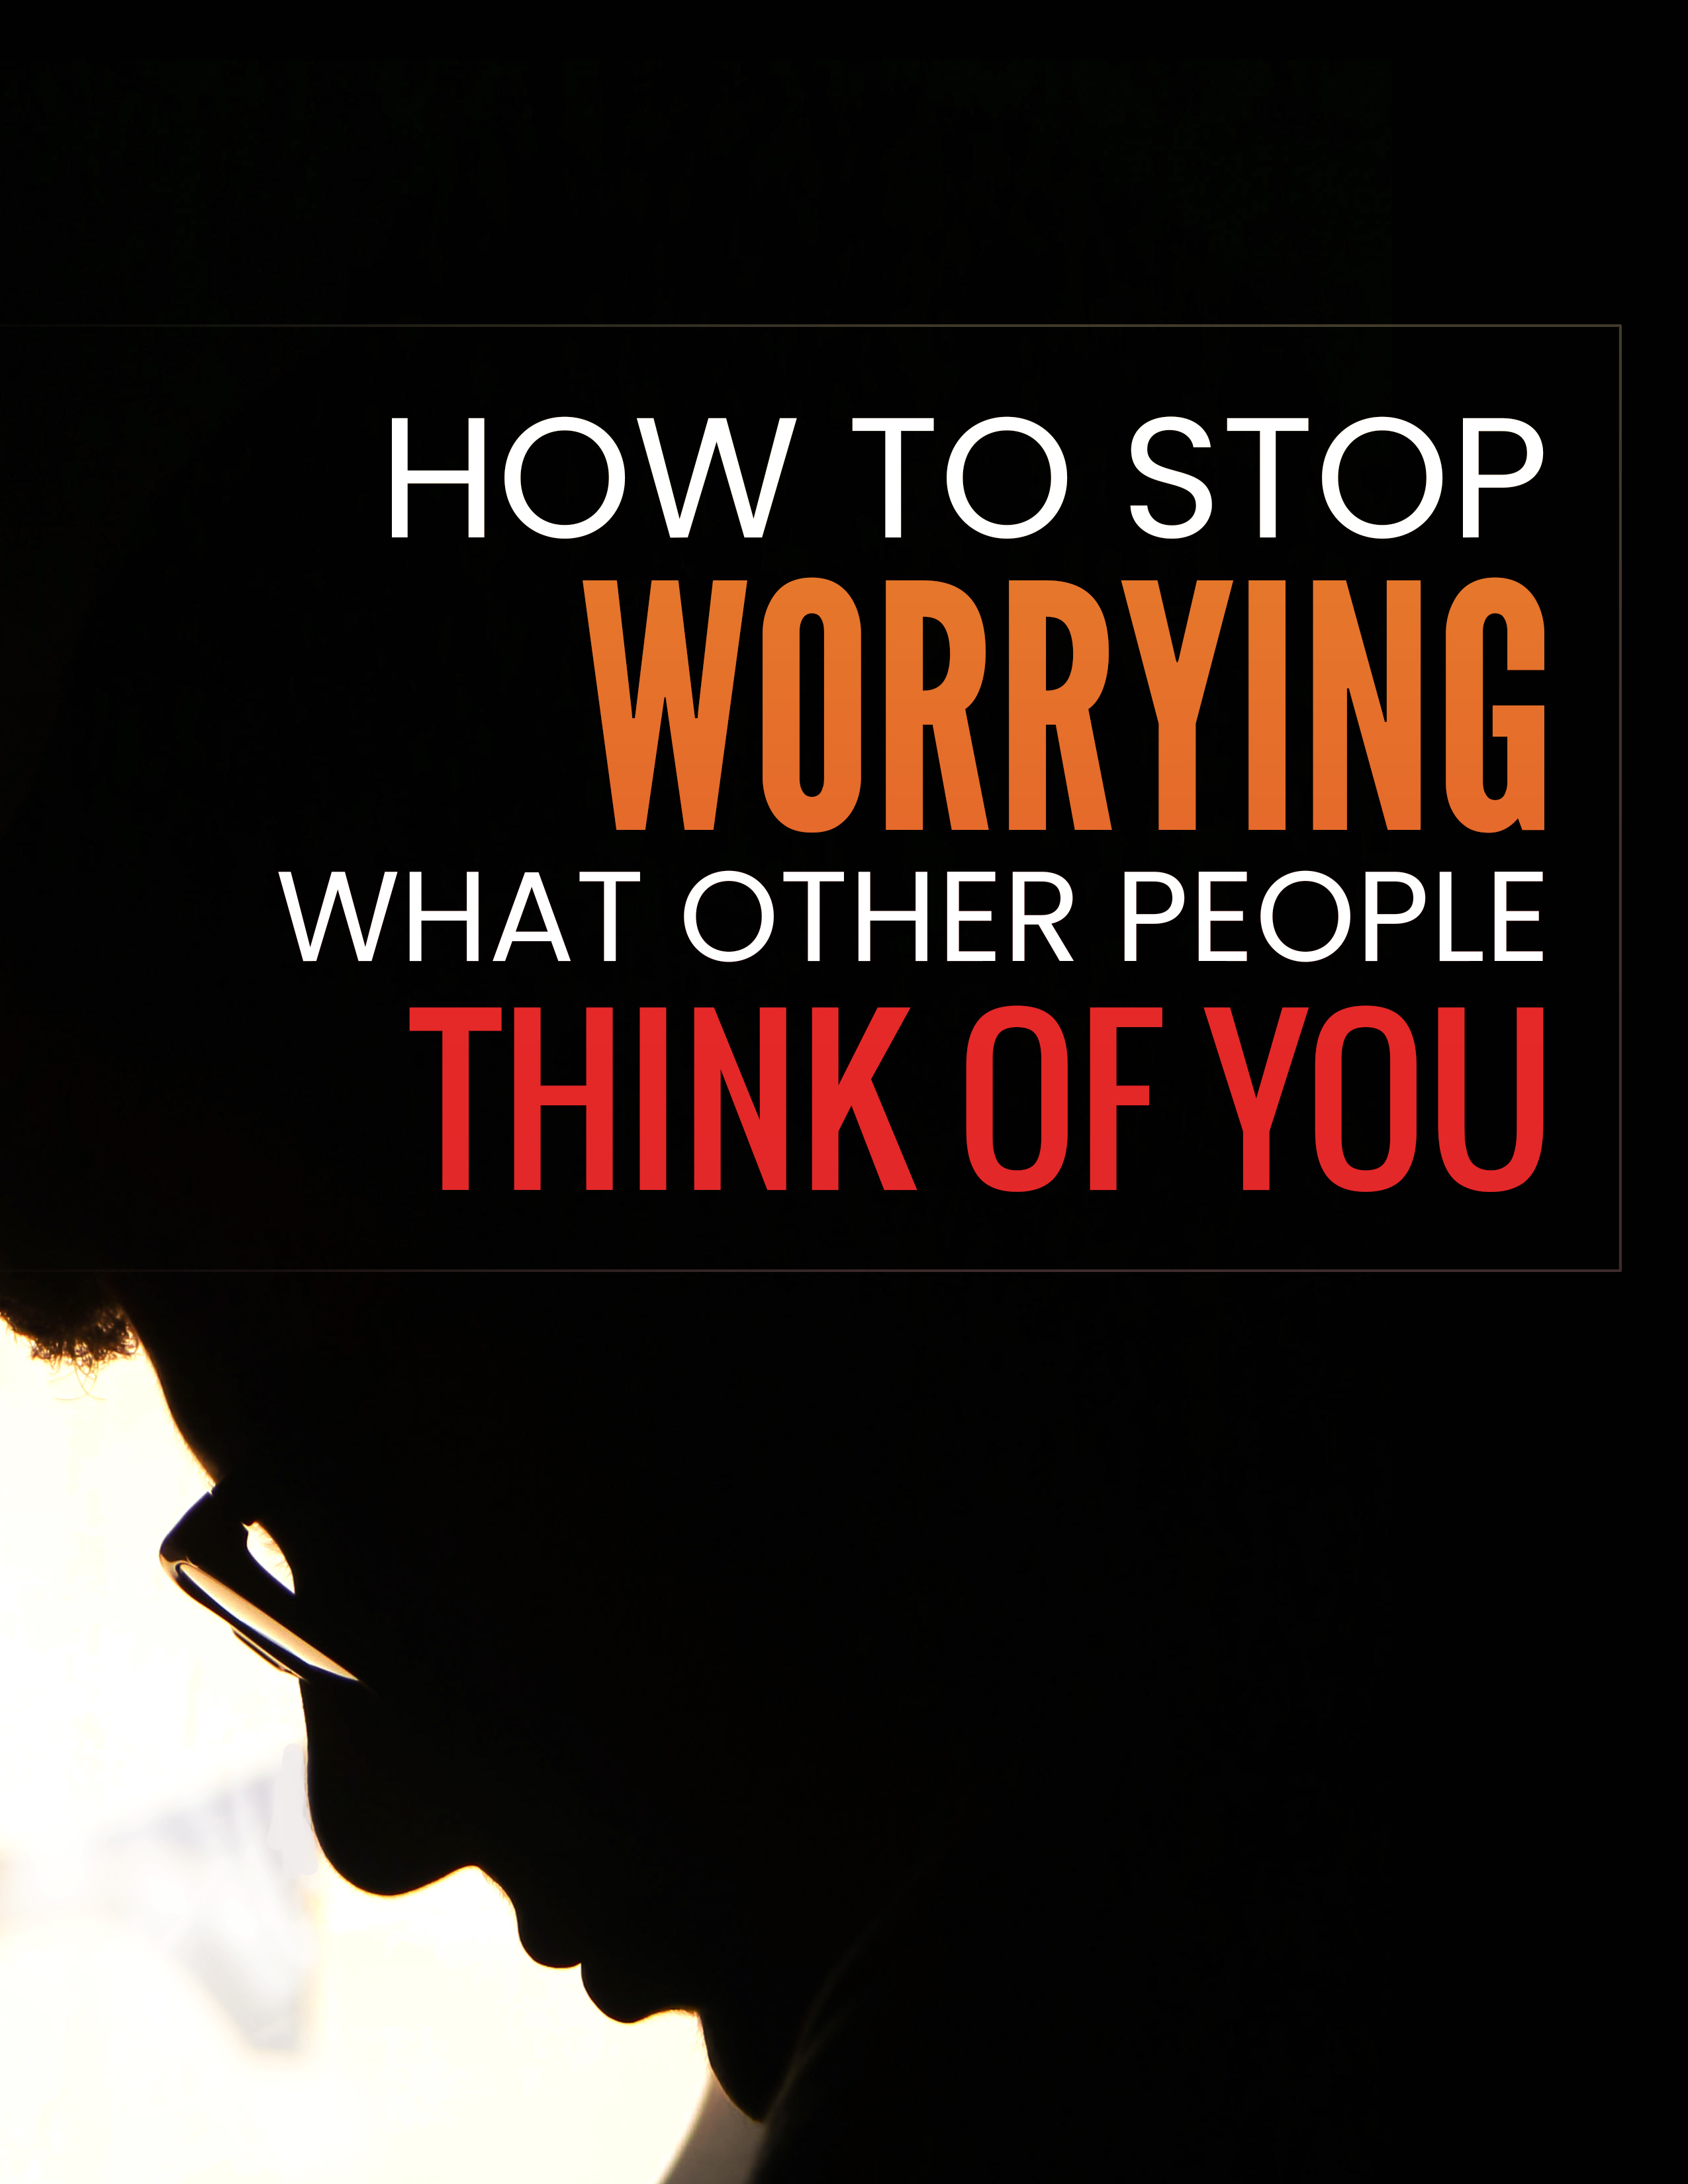 How To Stop Worrying What Other People Think of You Ebook's Book Image